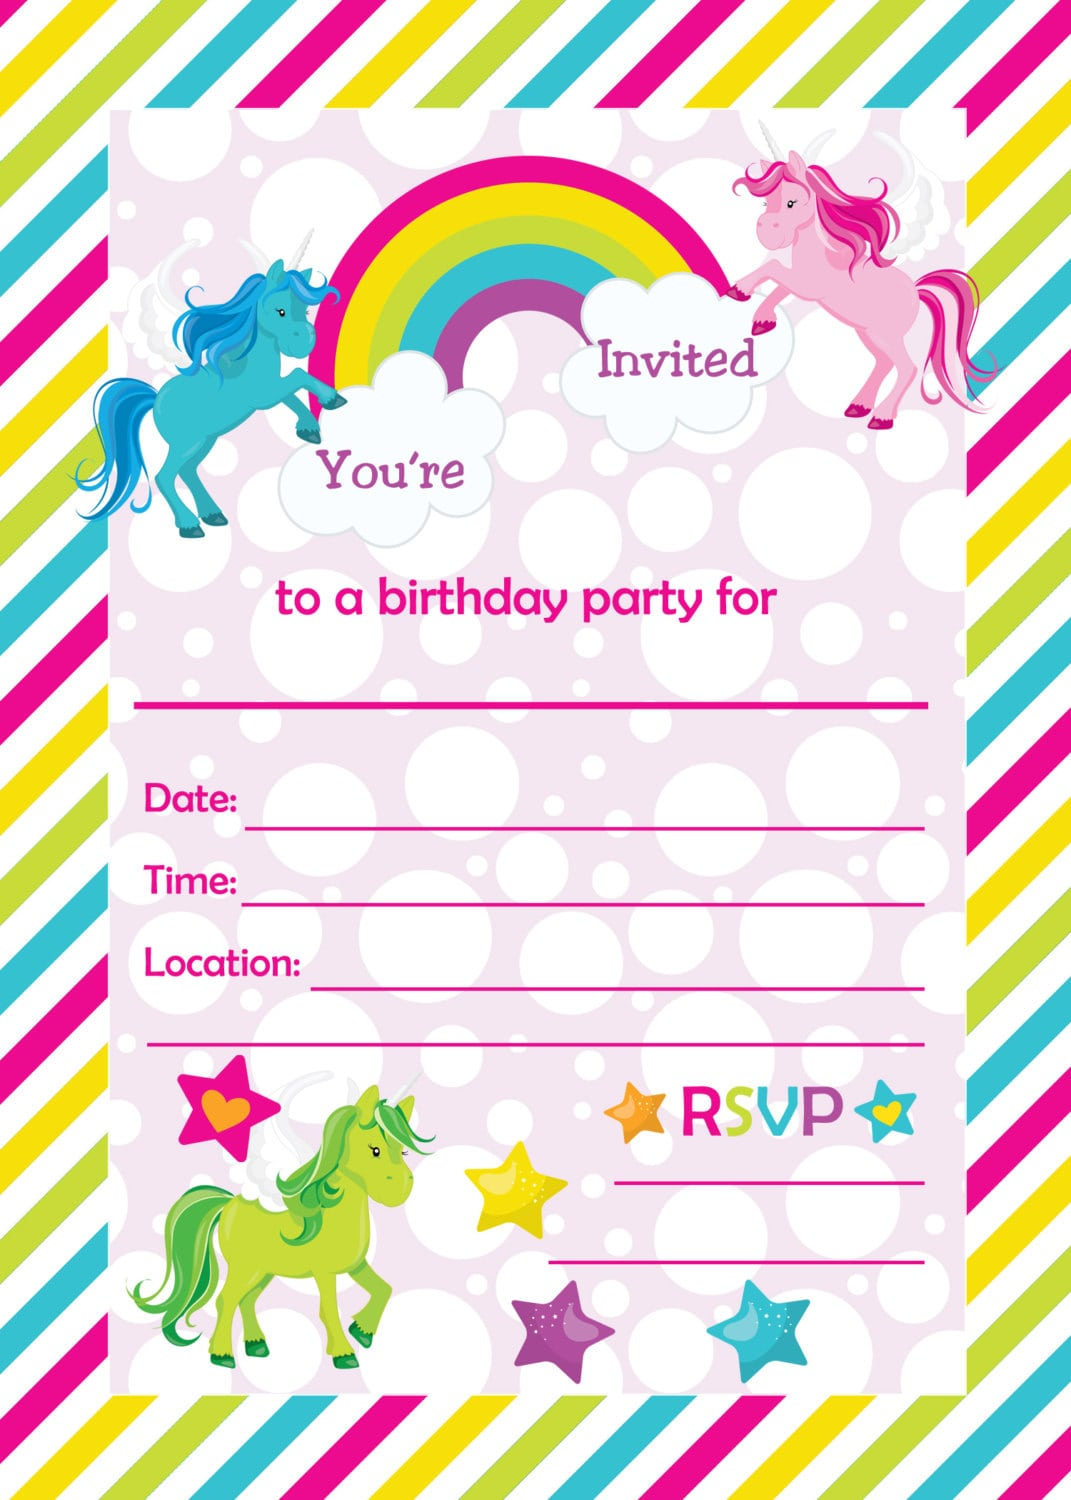 Fill In Birthday Party Invitations, Printable Rainbows And